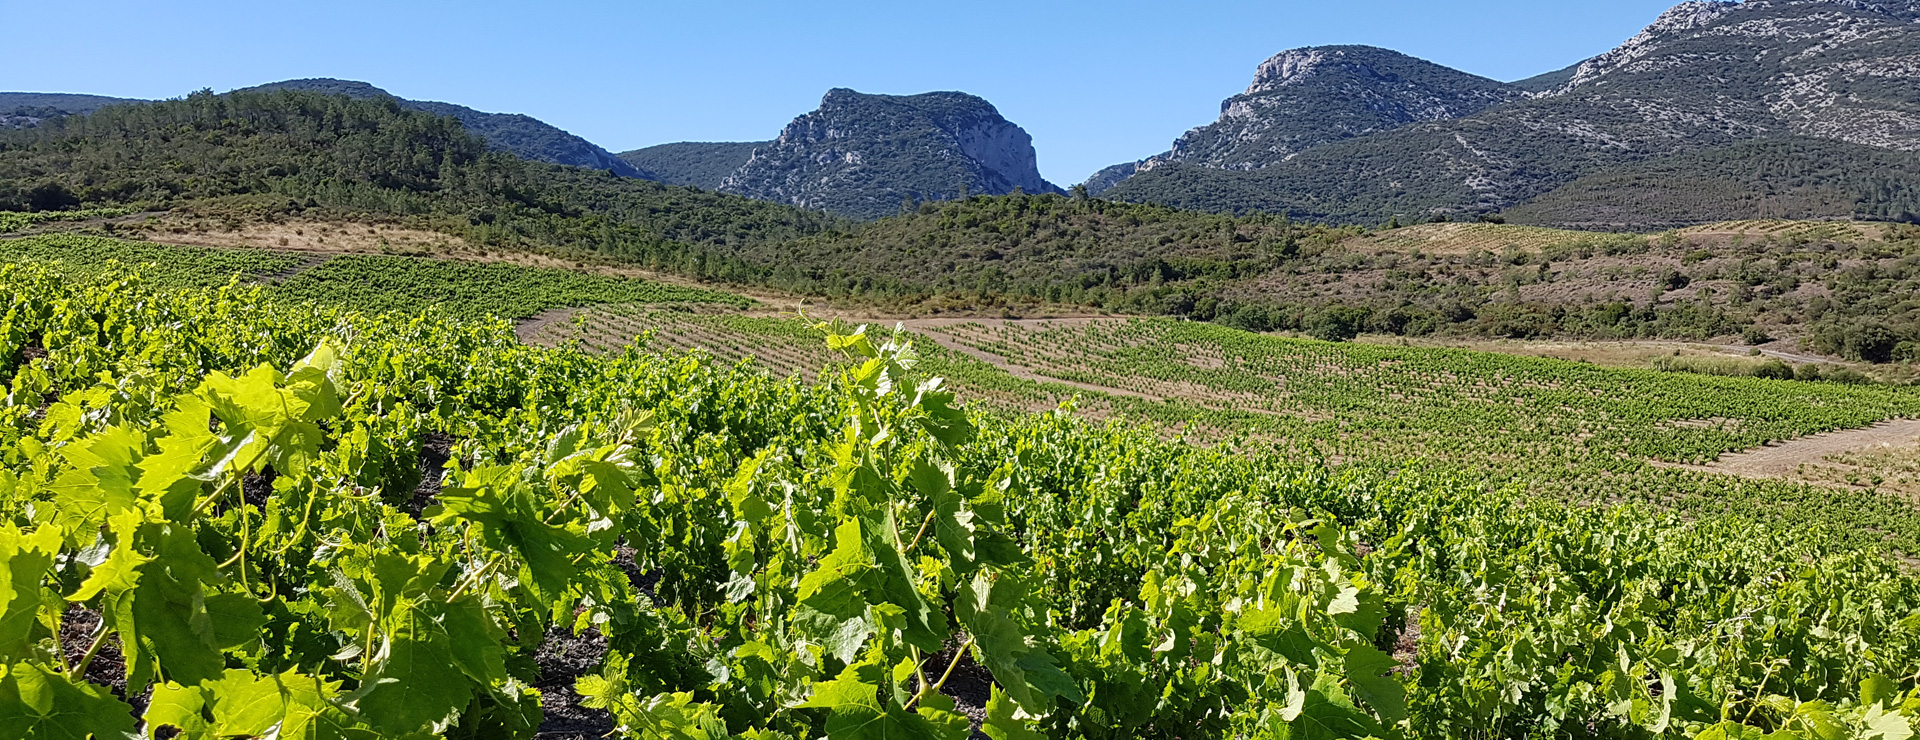 View of a vineyard in Languedoc-Roussillon